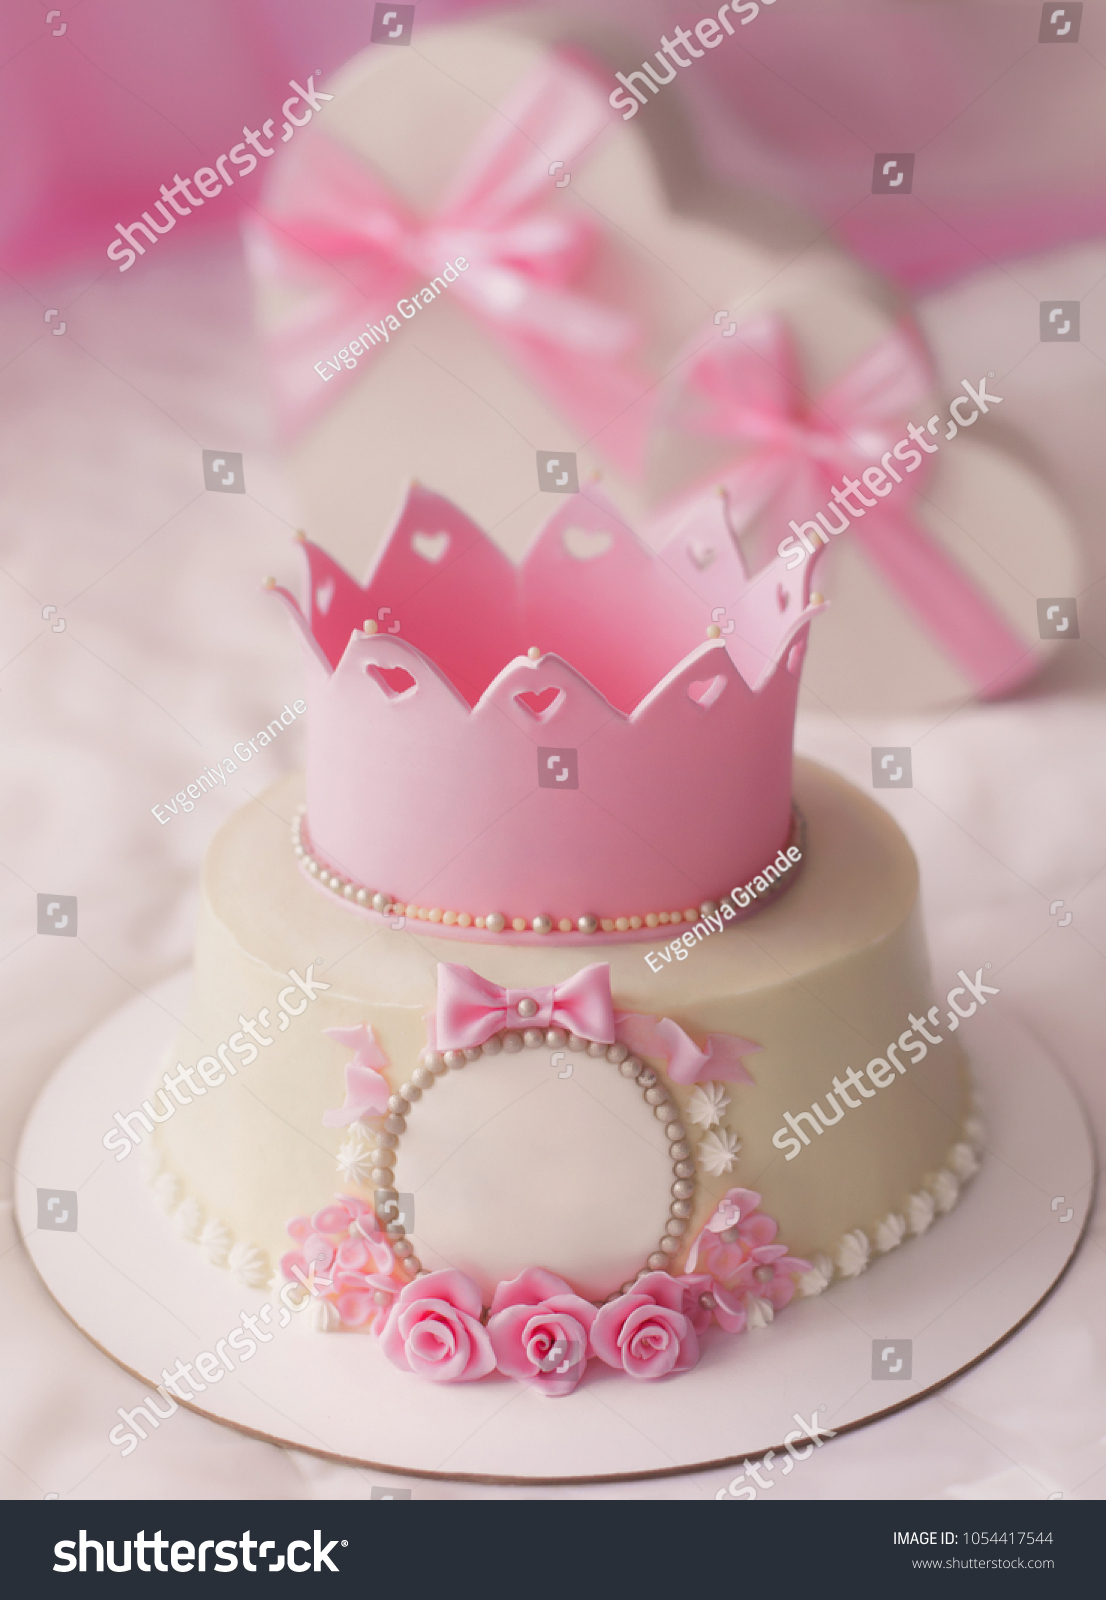 Stupendous Pink Cake Crown Gifts Heart Box Stock Photo Edit Now 1054417544 Funny Birthday Cards Online Kookostrdamsfinfo